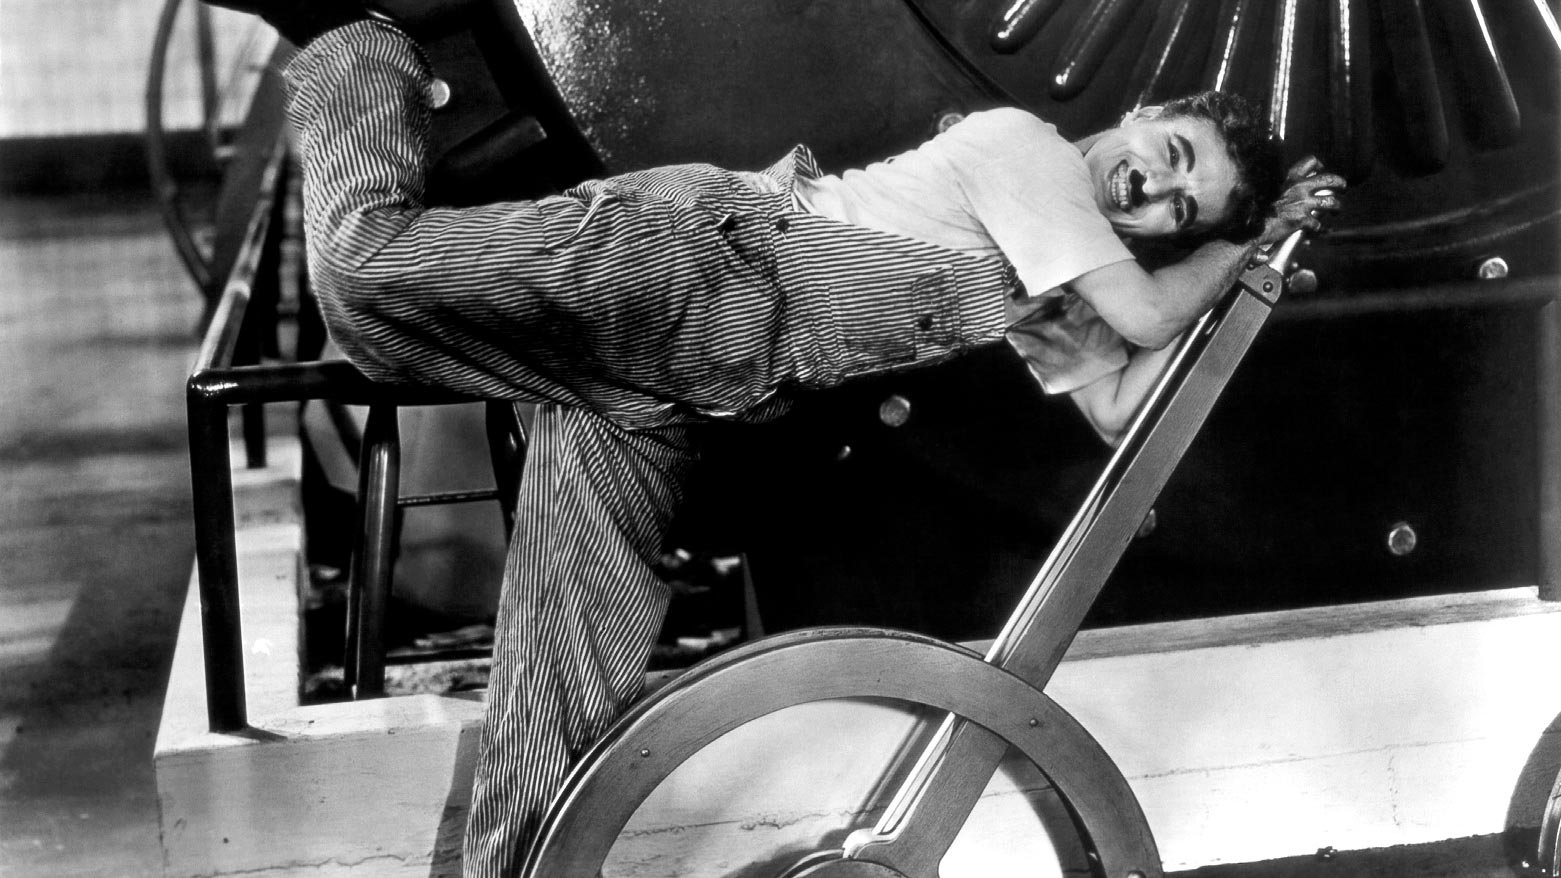 Charles Chaplin in his movie 'Modern Times' (1936). Image: Public Domain.